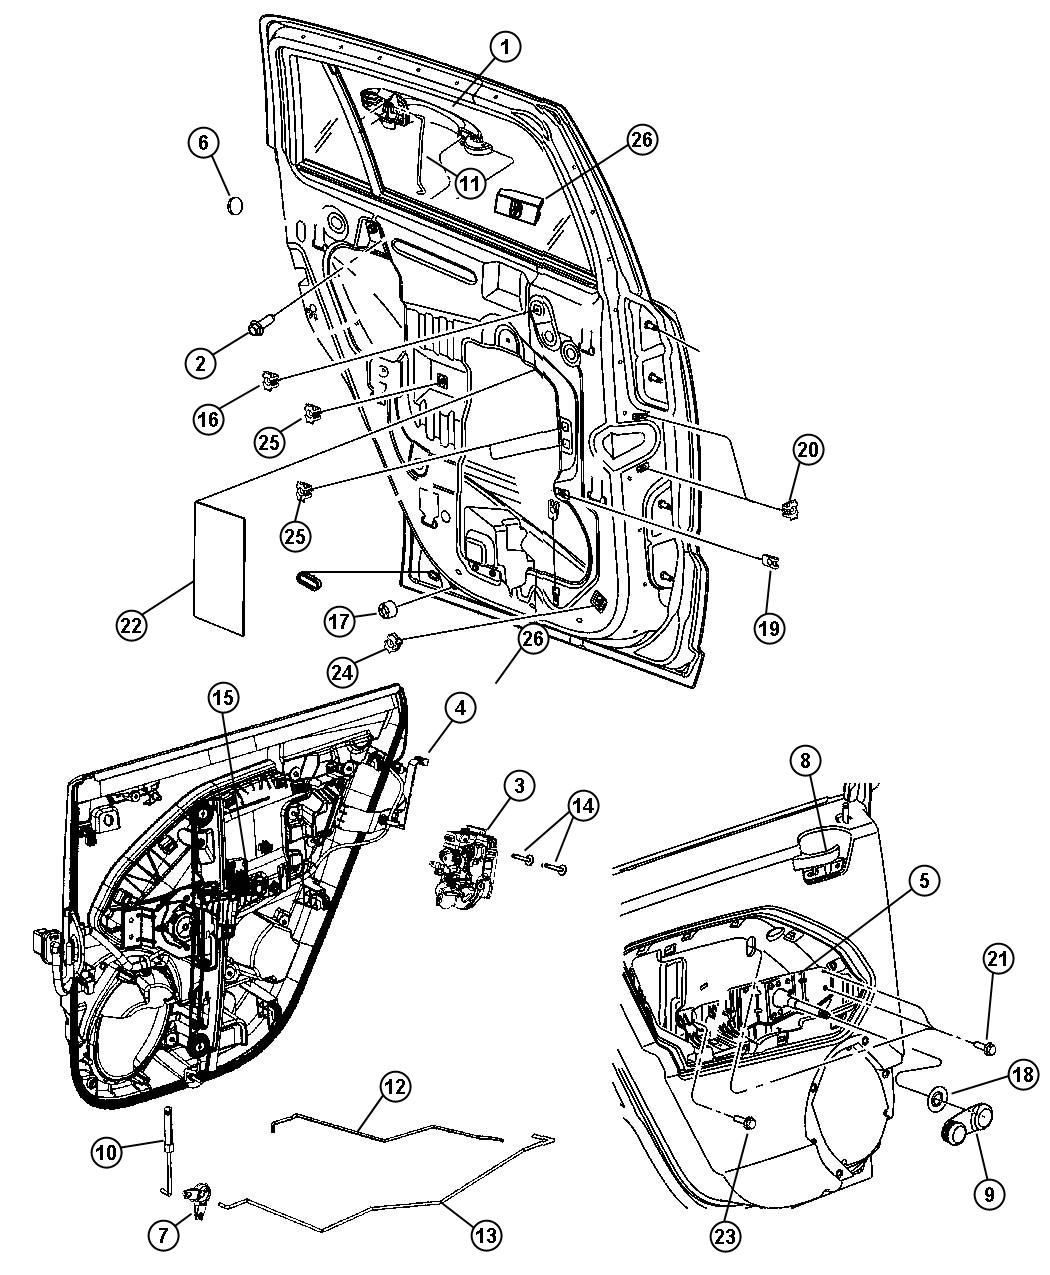 1995 pontiac grand prix window diagram